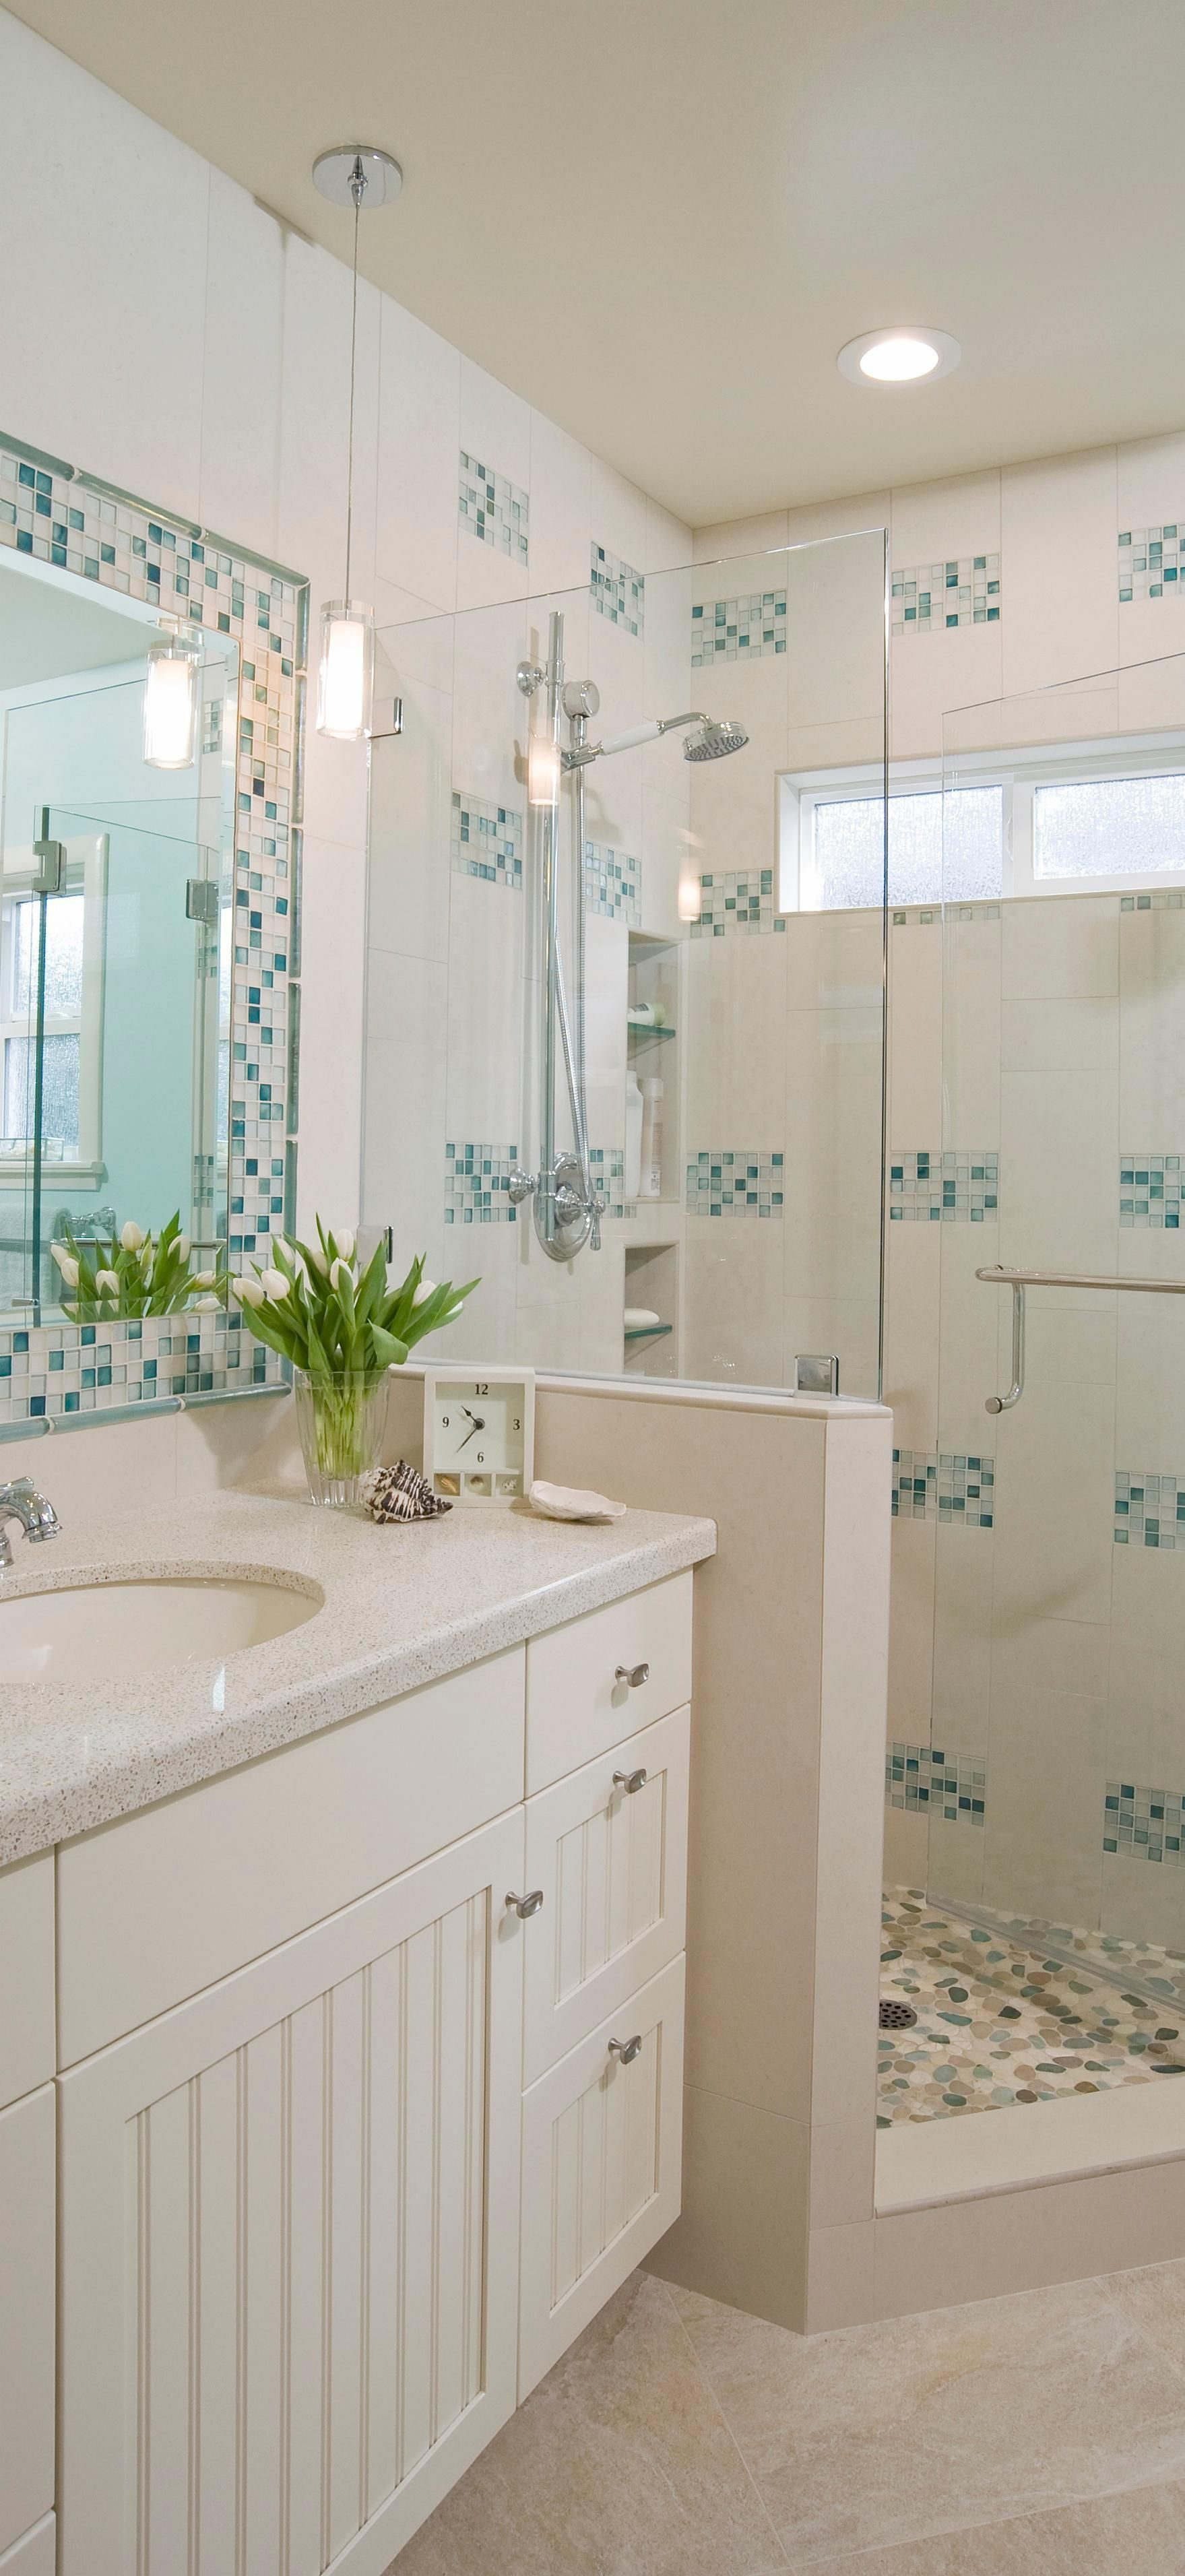 Coastal Blue Glass Tile Bathroom | Sacramento Designers | Pinterest ...